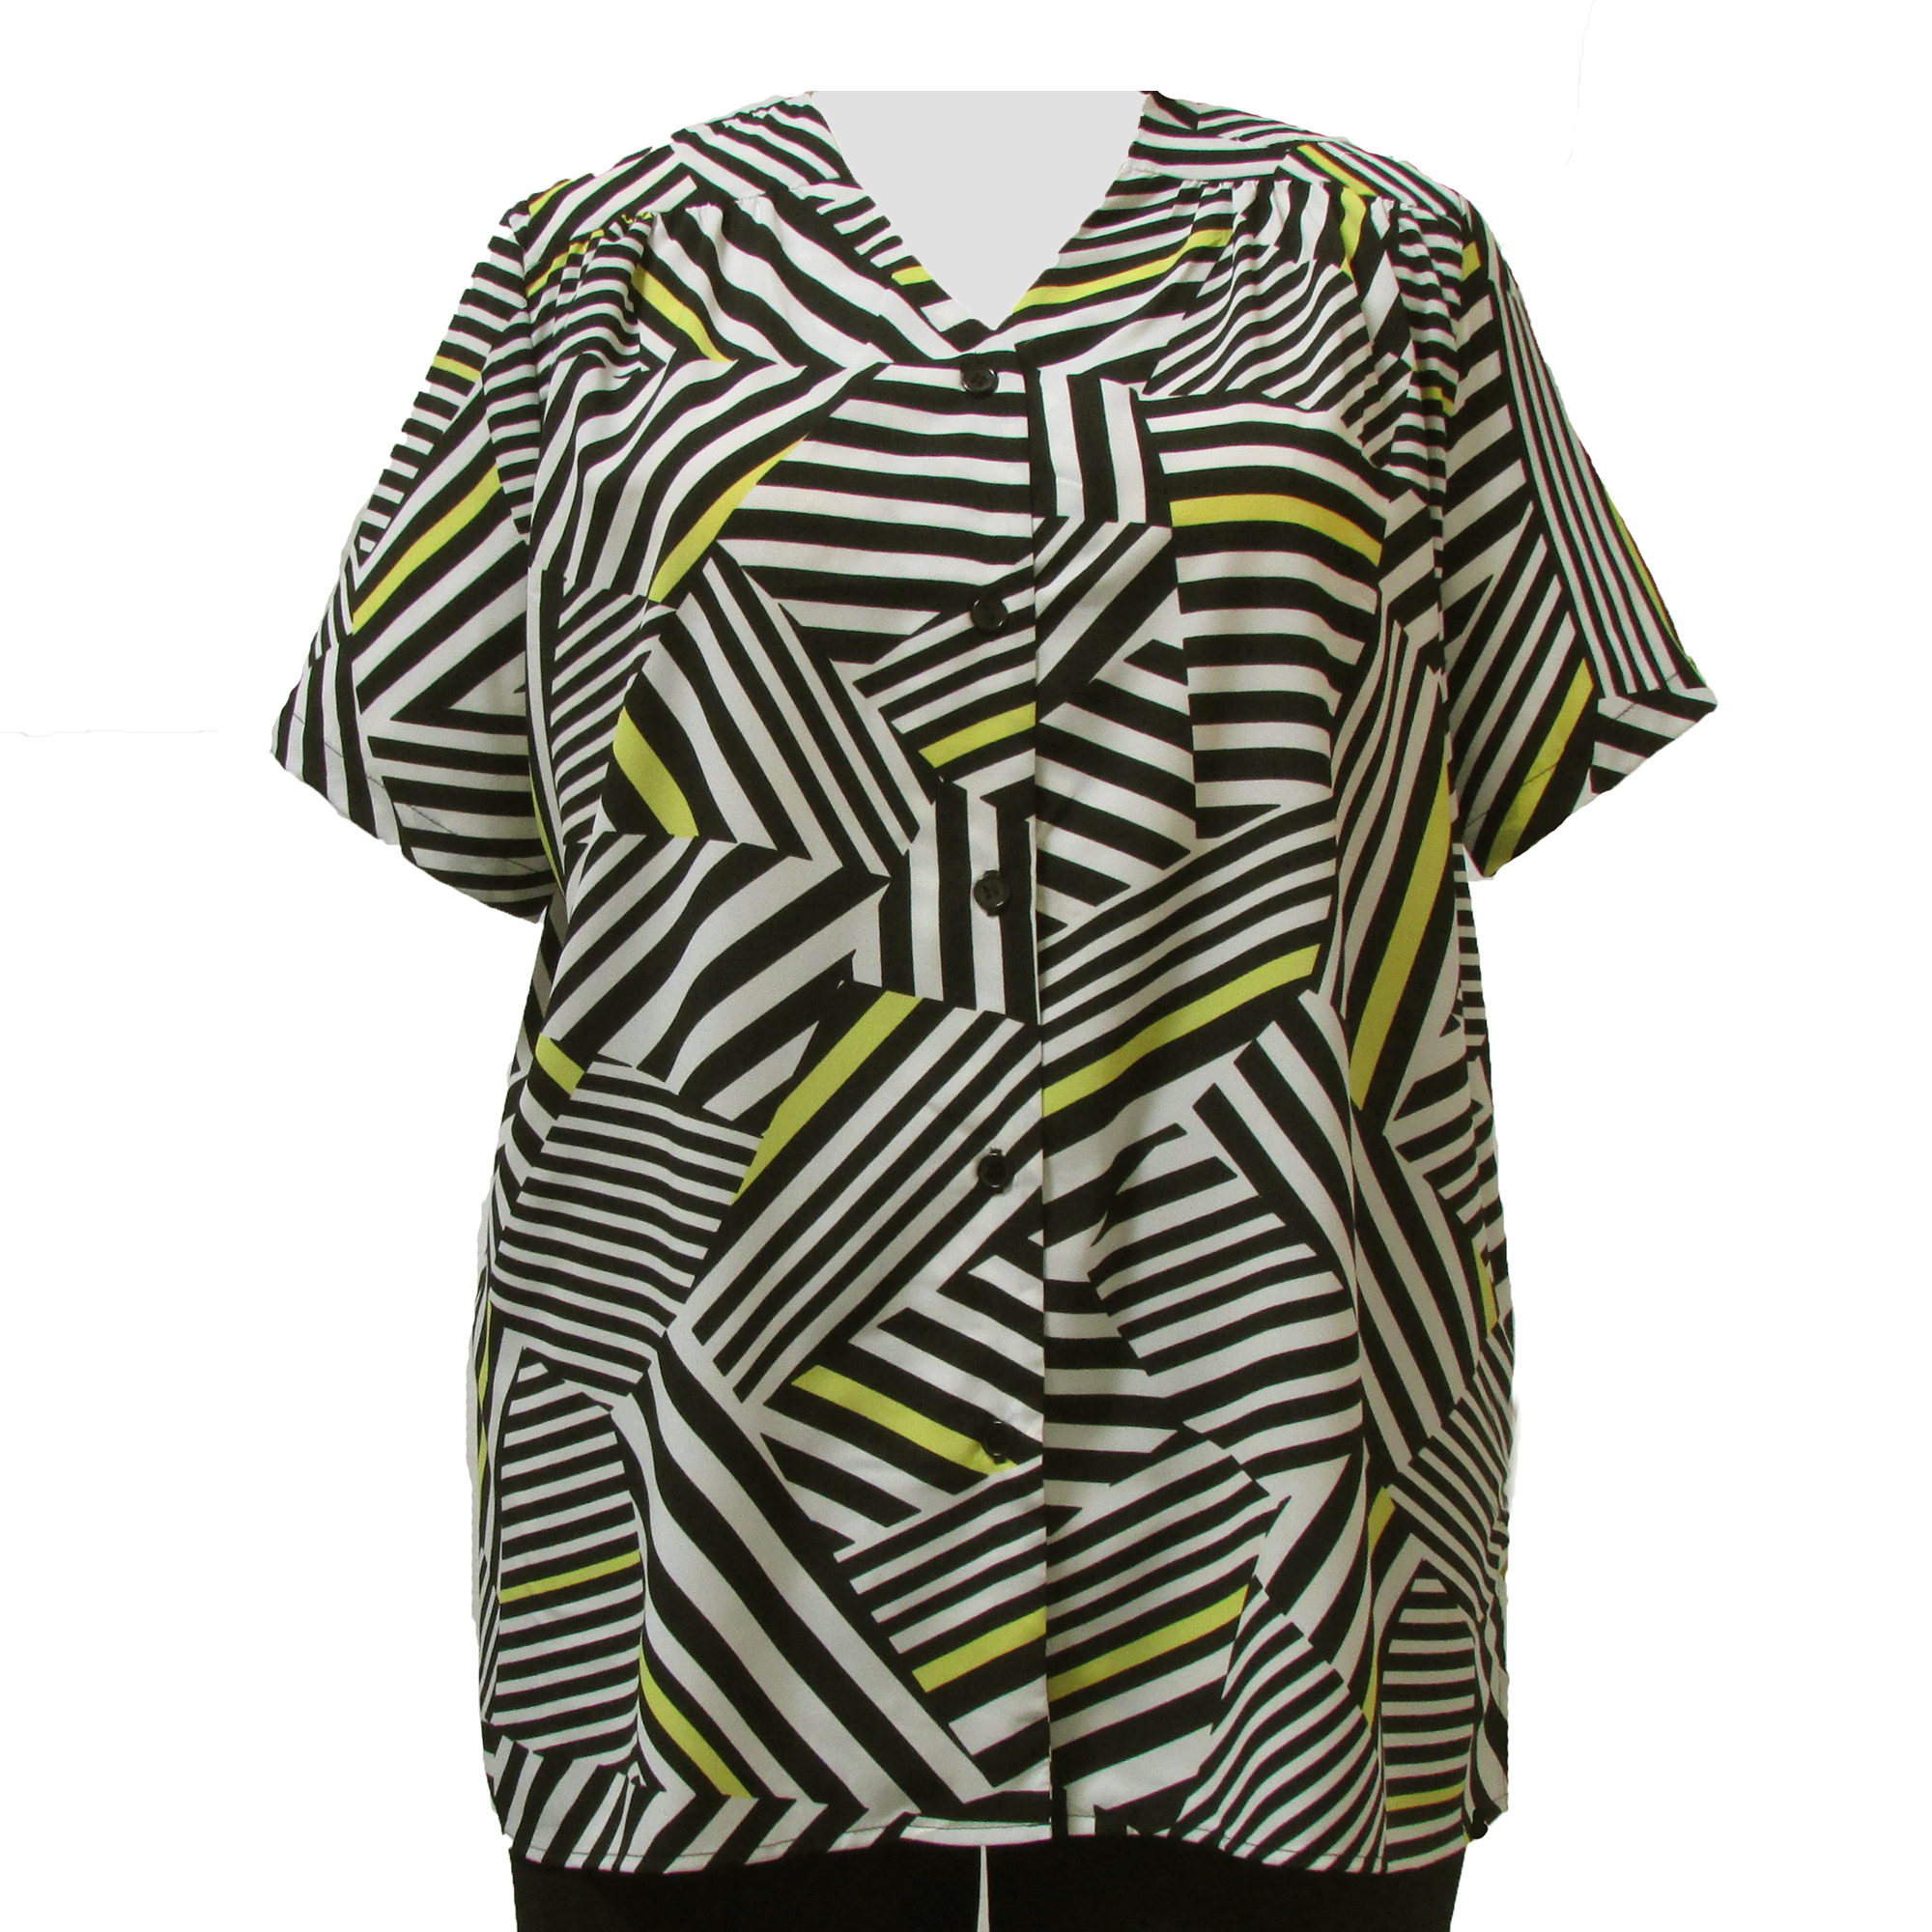 A Personal Touch Black & White Geometric V-Neck Baseball Shirt with shirring Woman's Plus Size Blouse at Sears.com